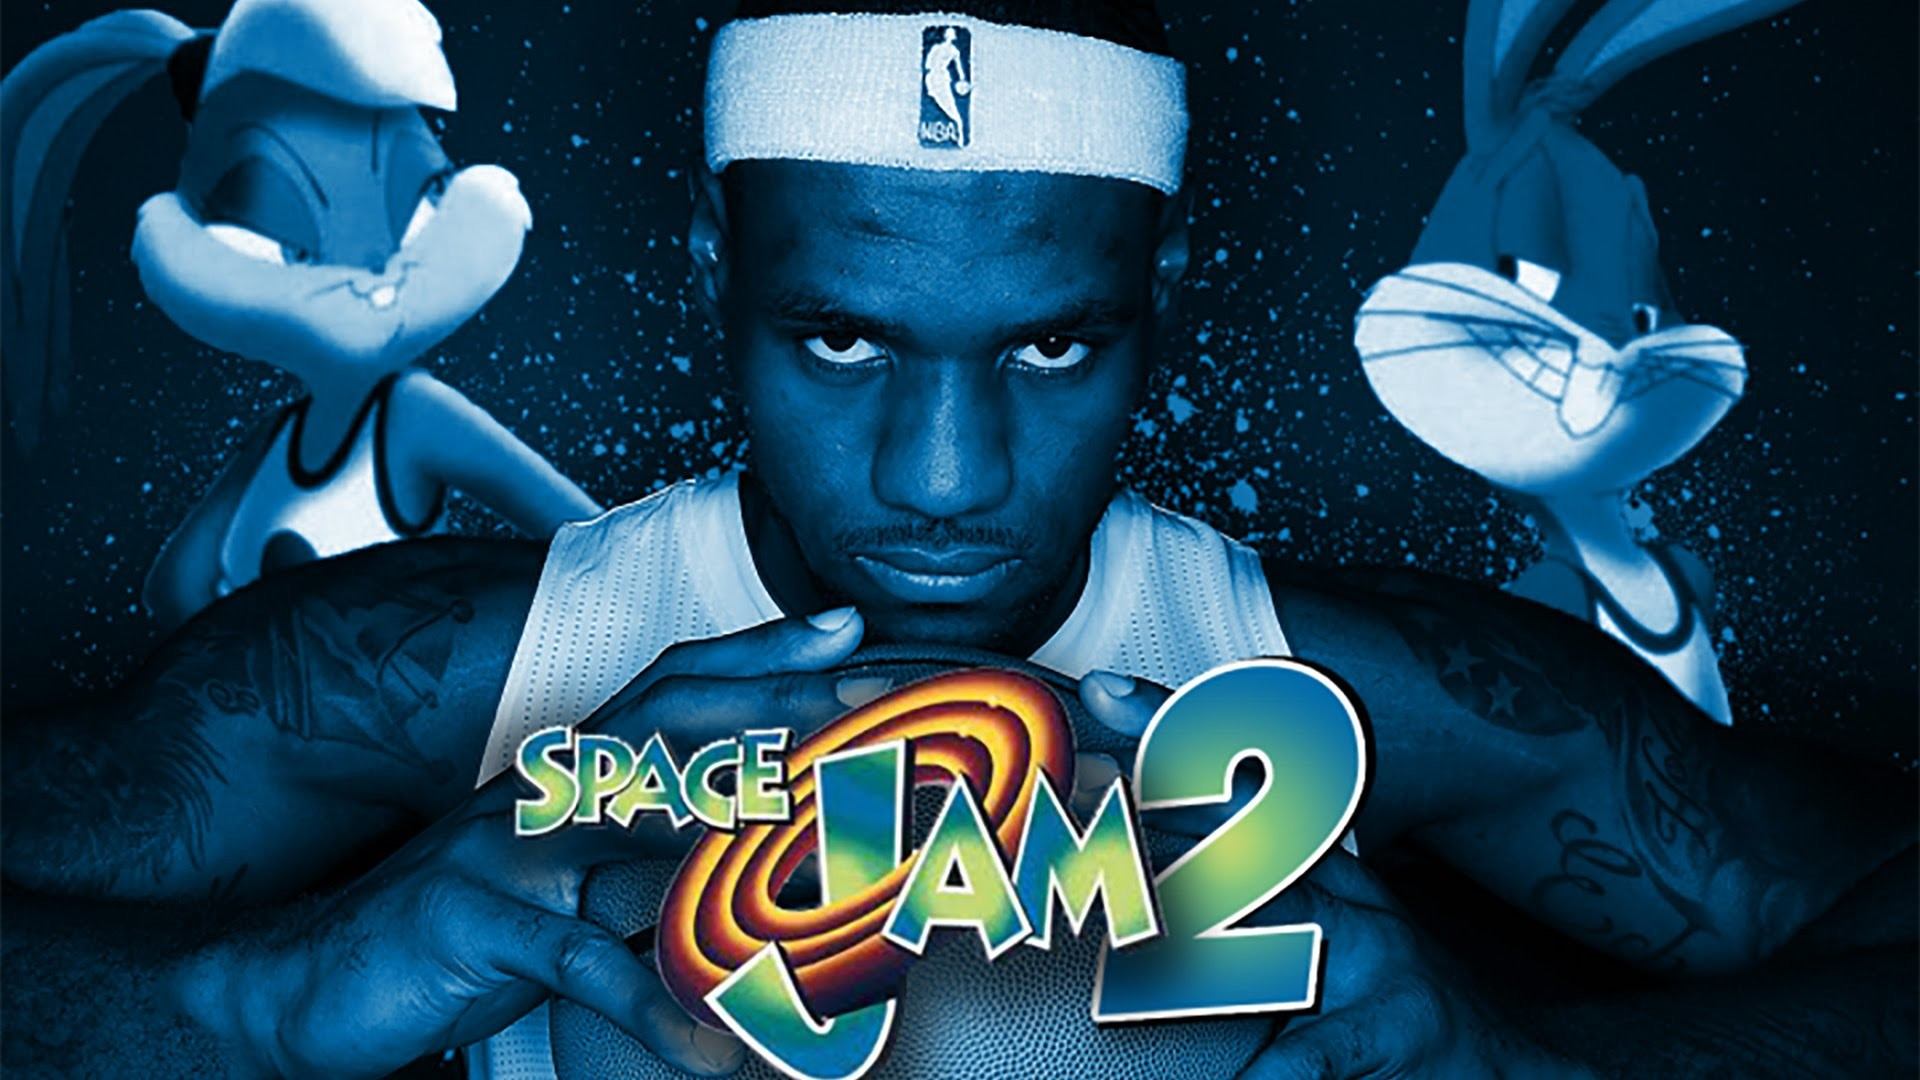 Space Jam is a 1996 American liveactionanimated sports comedy film starring basketball player Michael Jordan and featuring the Looney Tunes cartoon characters